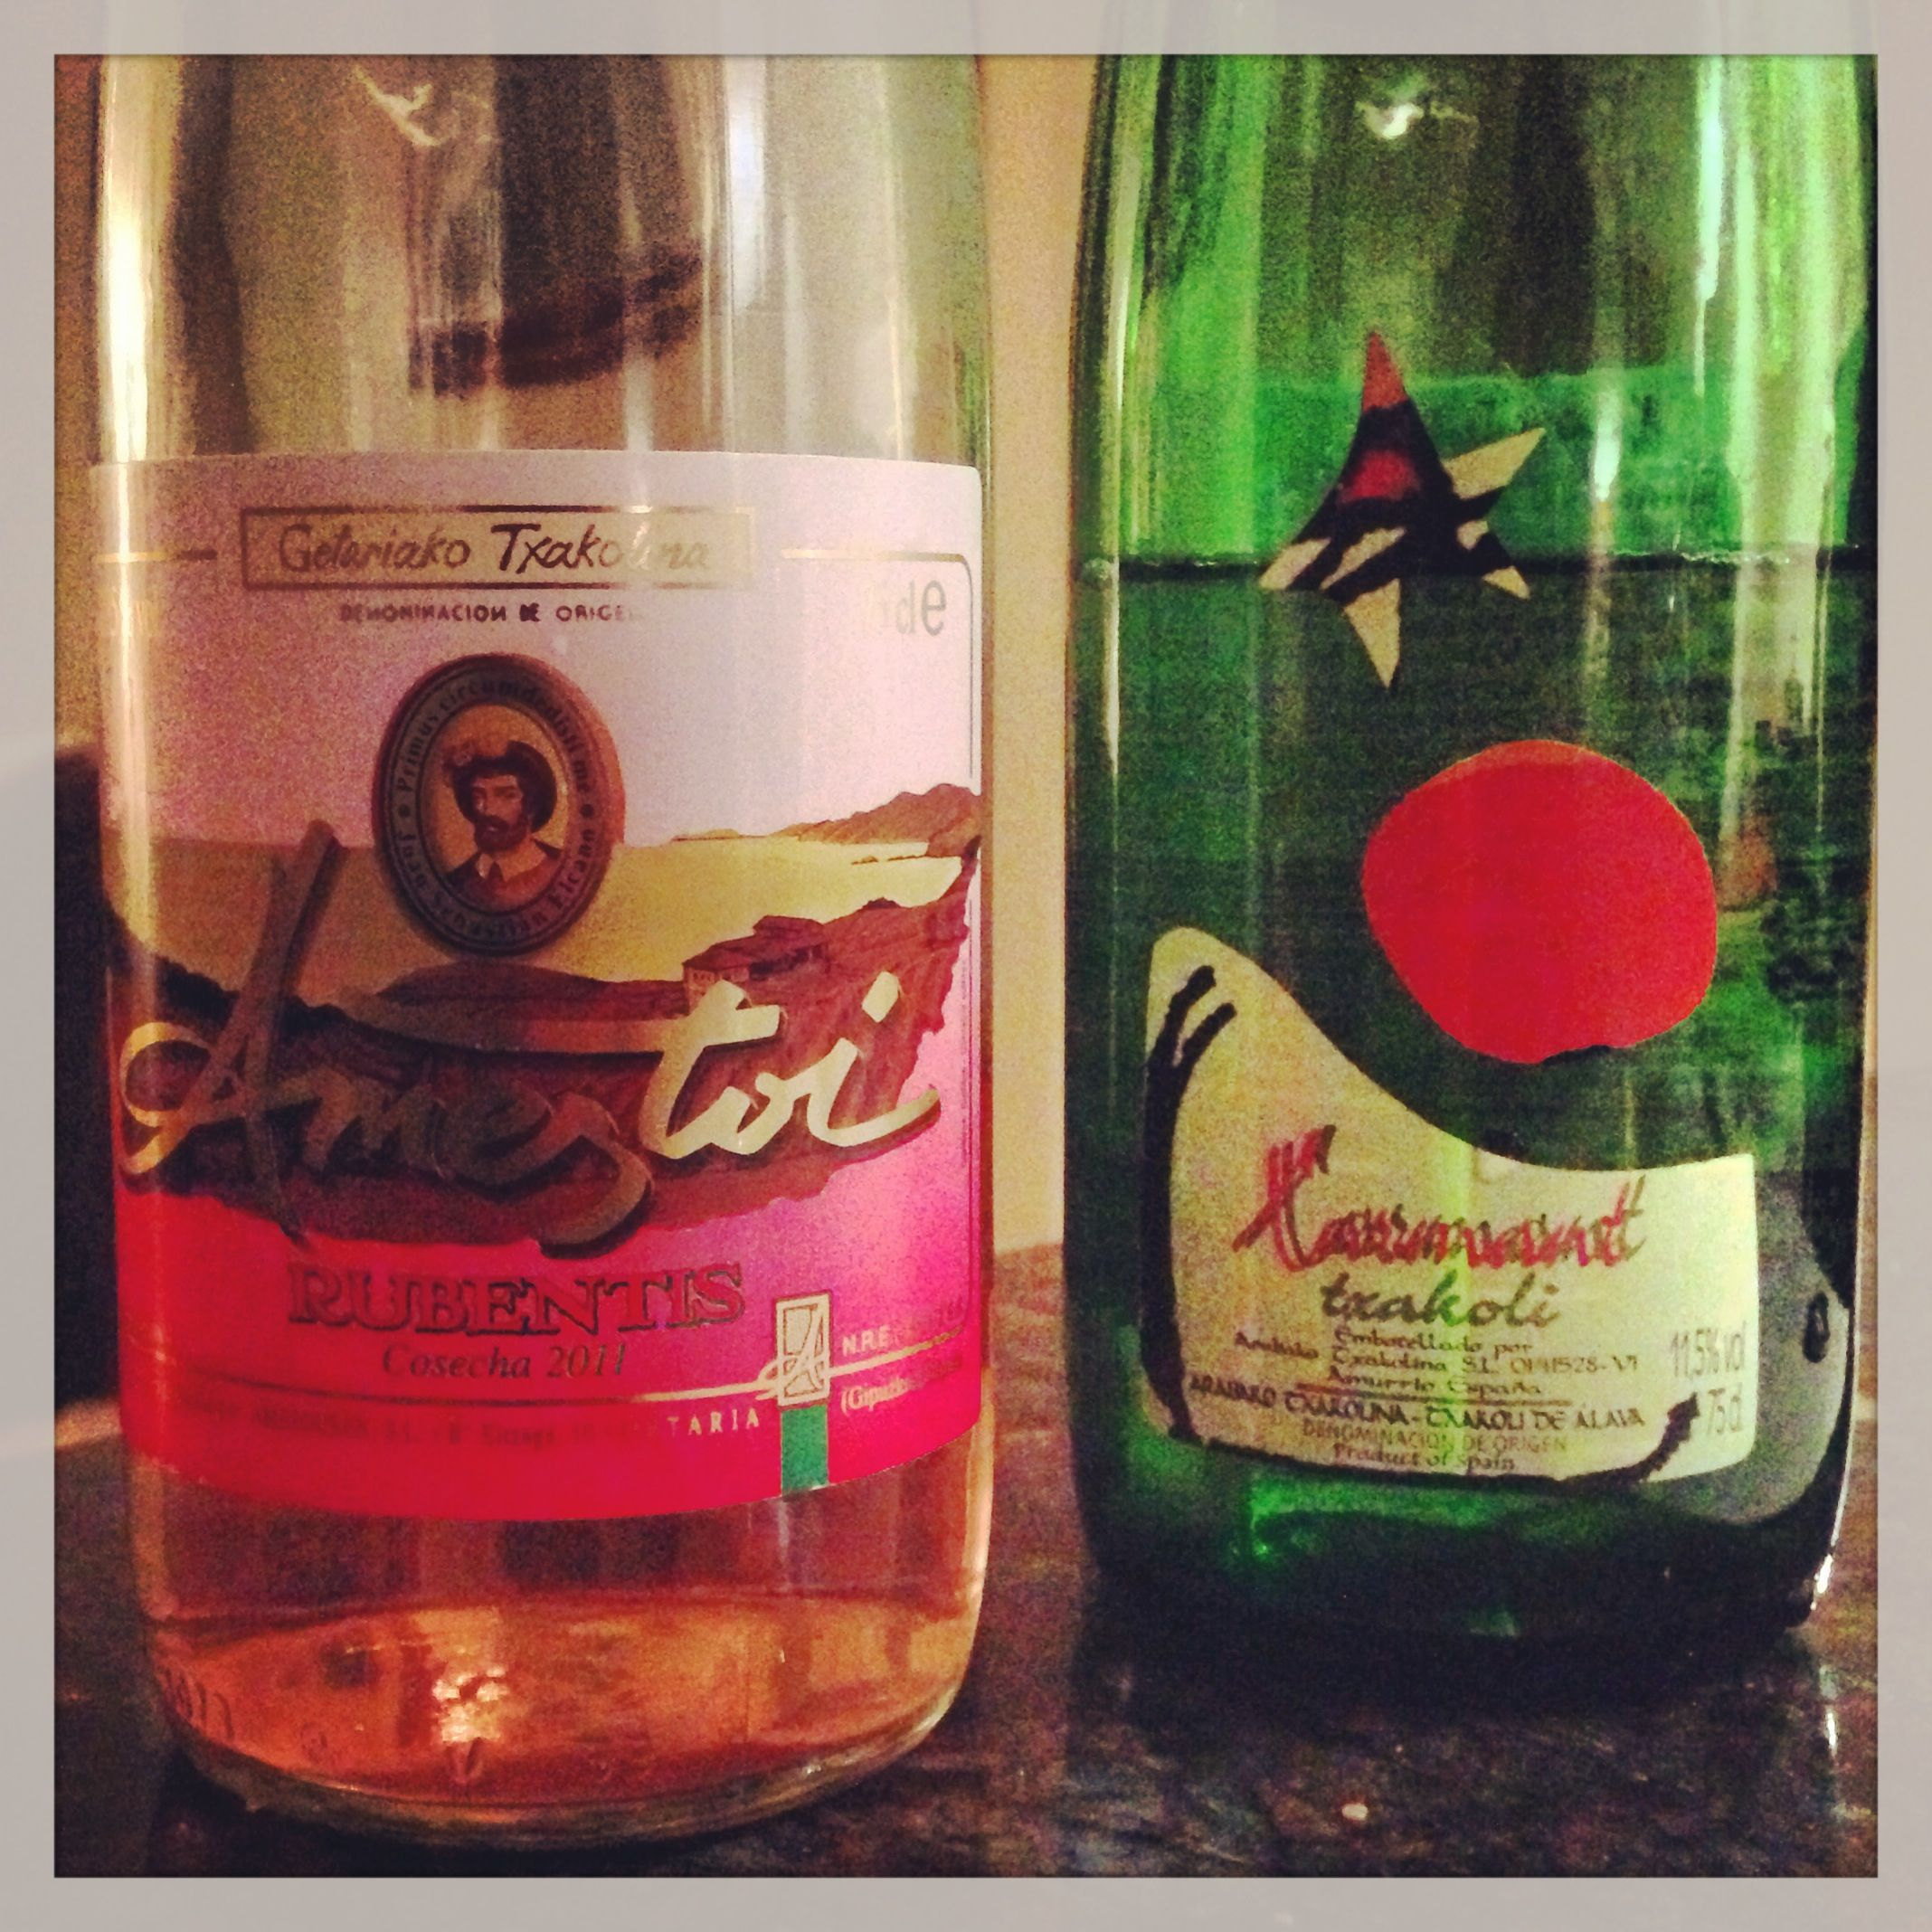 The Most Appropriate Way To Celebrate Spring Side By Side Txakolinas I Love The Very Distinct Differences Between These Spring Treats Apple Pear Wine Bottle